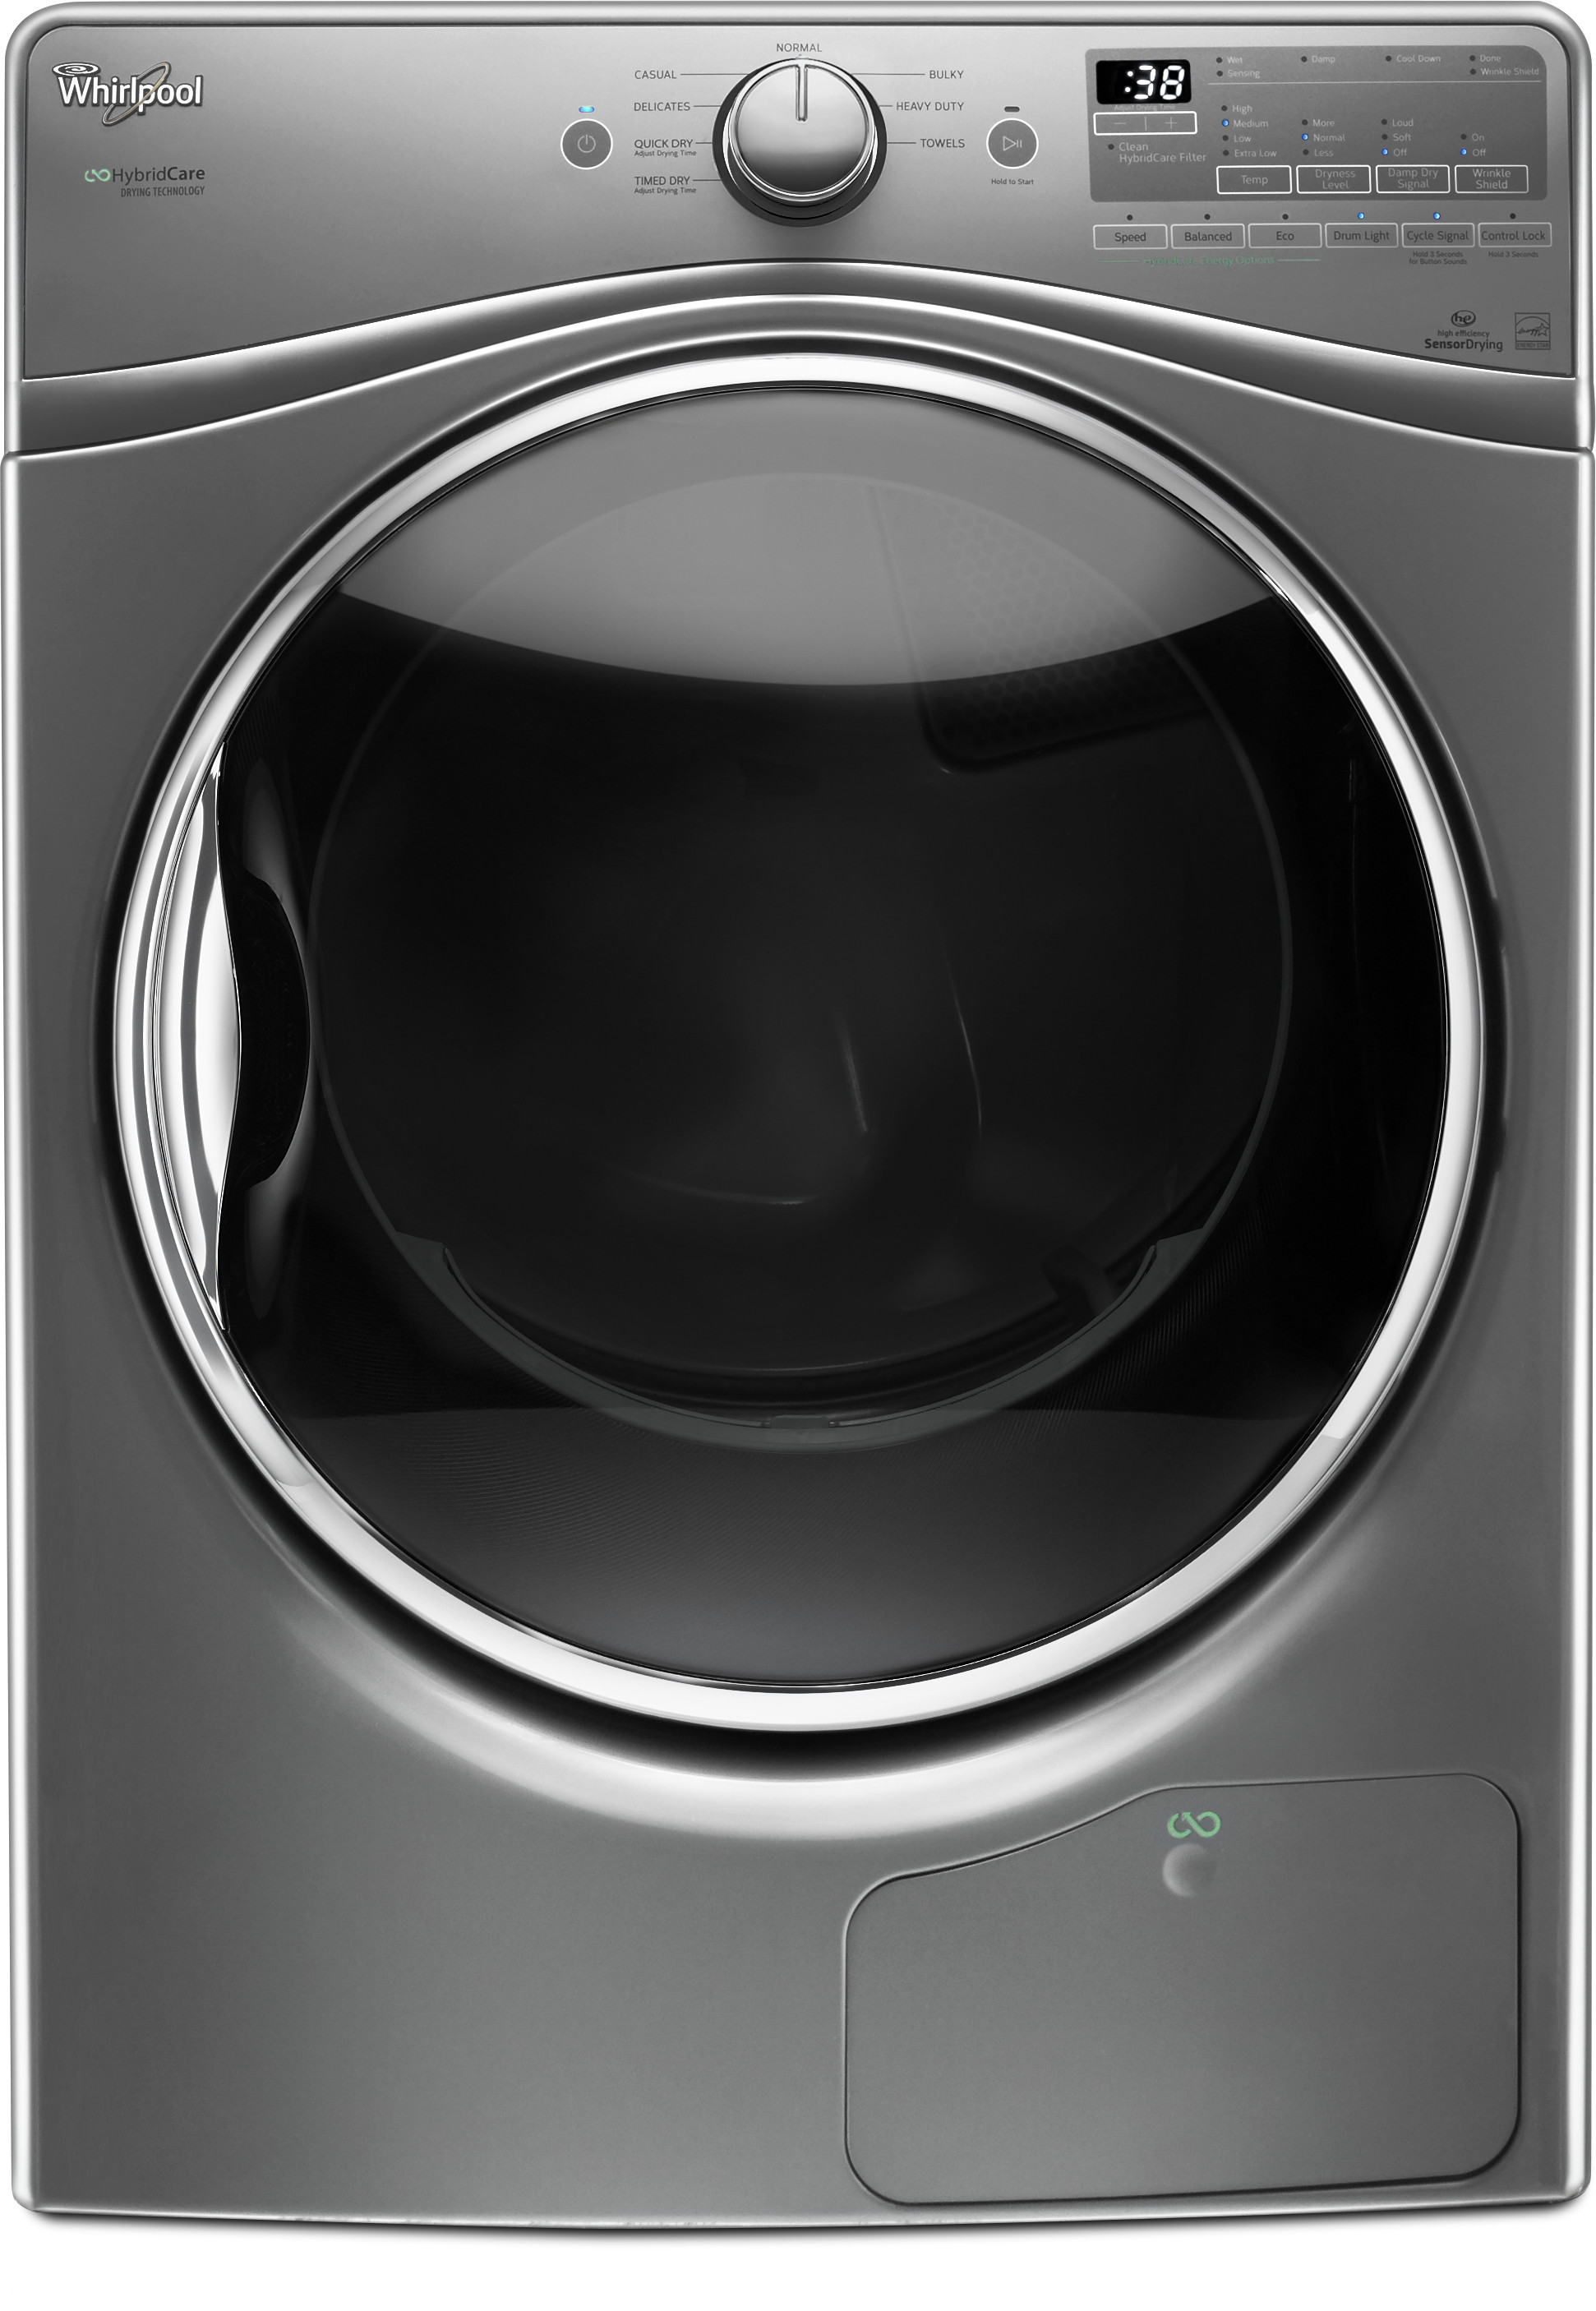 Miele stackable washer dryer ventless - Miele Stackable Washer Dryer Ventless 50